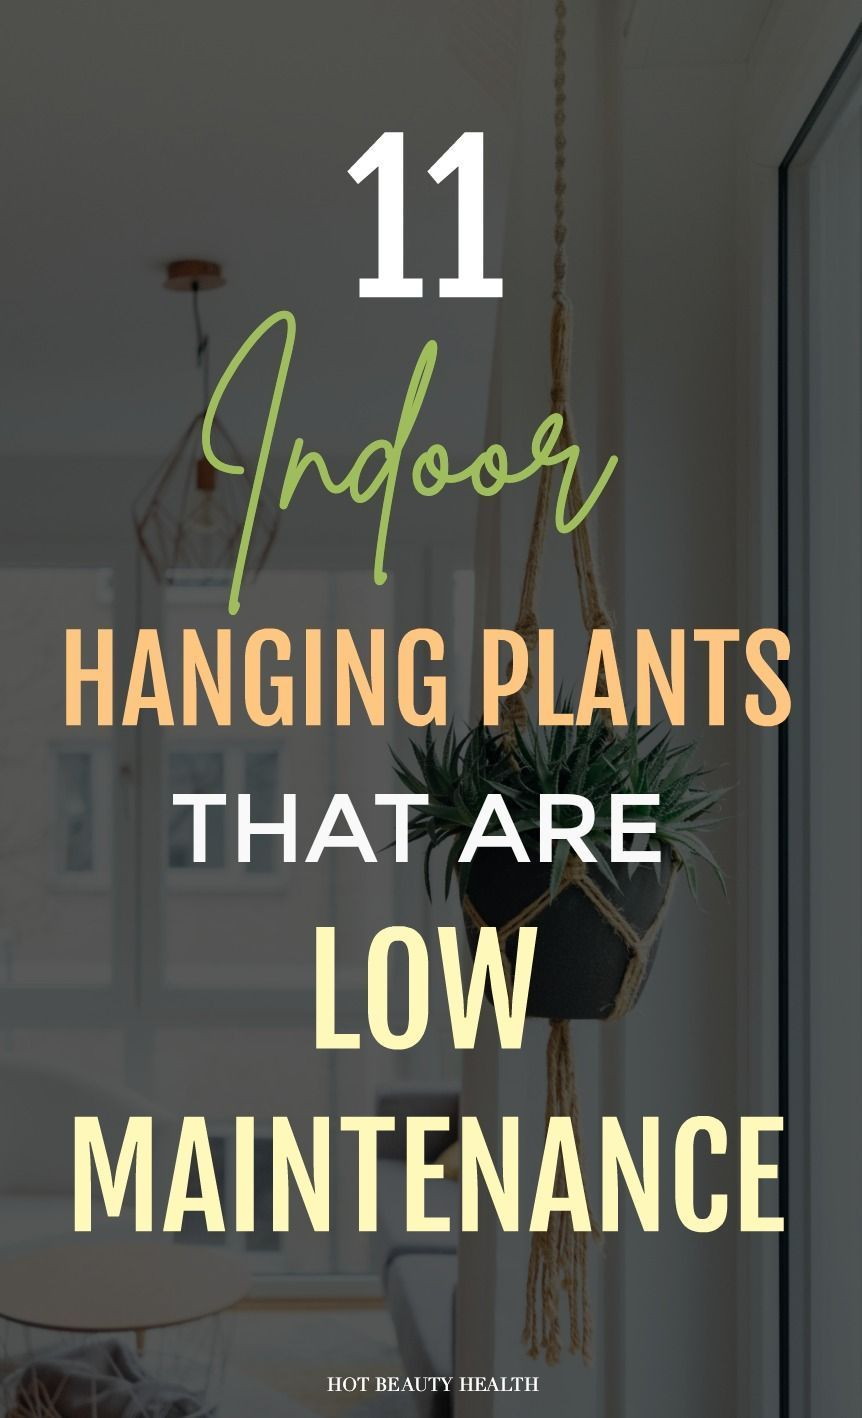 Indoor Hanging Plants To Green Up Your Home These 11 low maintenance hanging plants adds beautiful greenery to the home! I like to place them inside my bedroom and kitchen near the window. If you're looking for plants that hang well, you're going to love these!These 11 low maintenance hanging plants adds beautiful greenery to t...